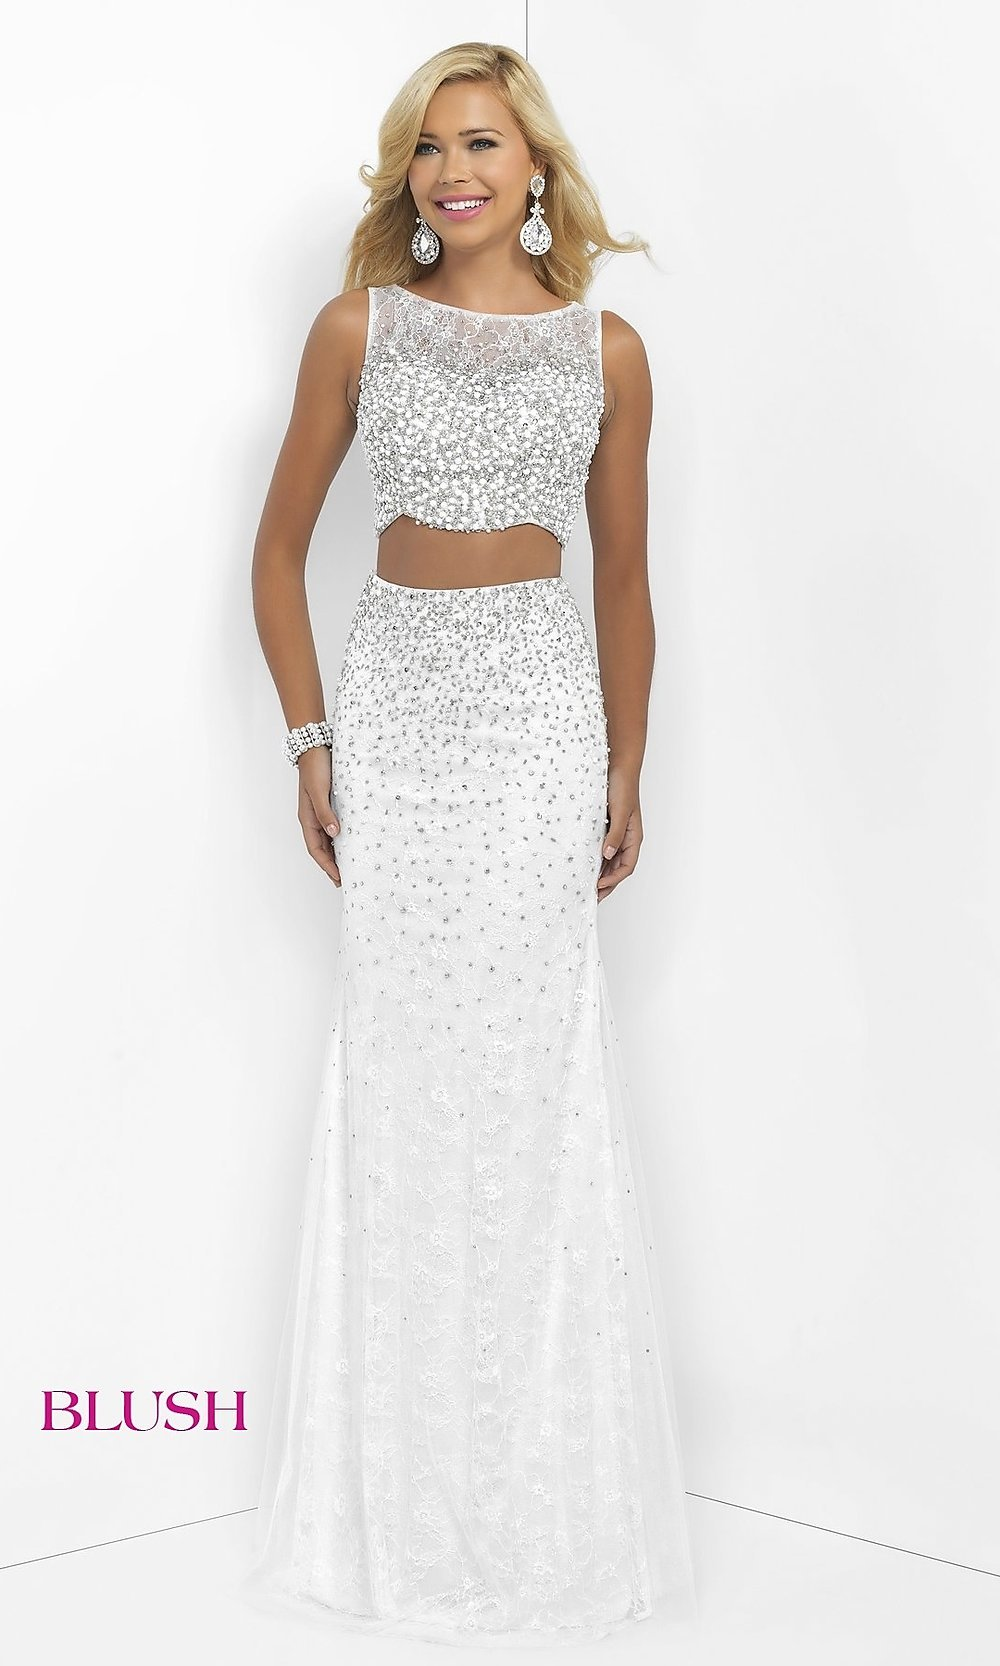 Wedding White Prom Dress long white two piece blush prom dress promgirl hover to zoom